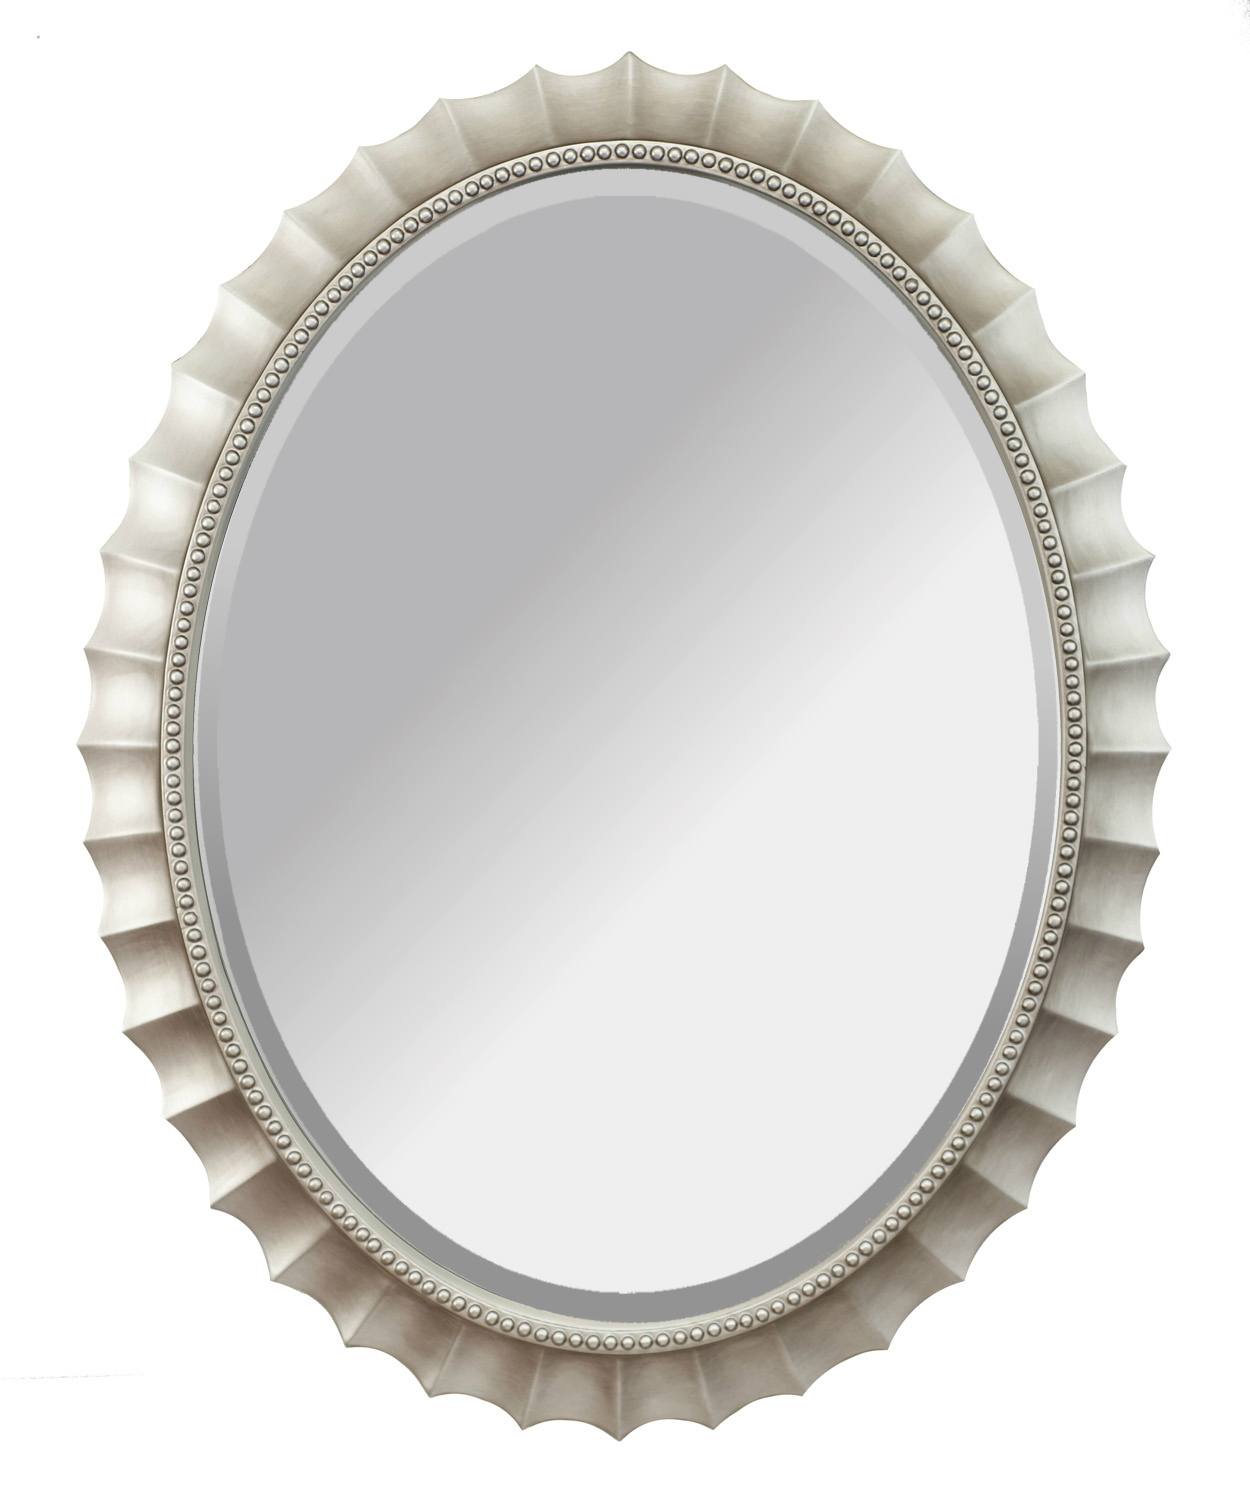 Alpine Fine Furniture 2167 Audrey Brushed Silver Wall Mirror, 31 x 39 in.